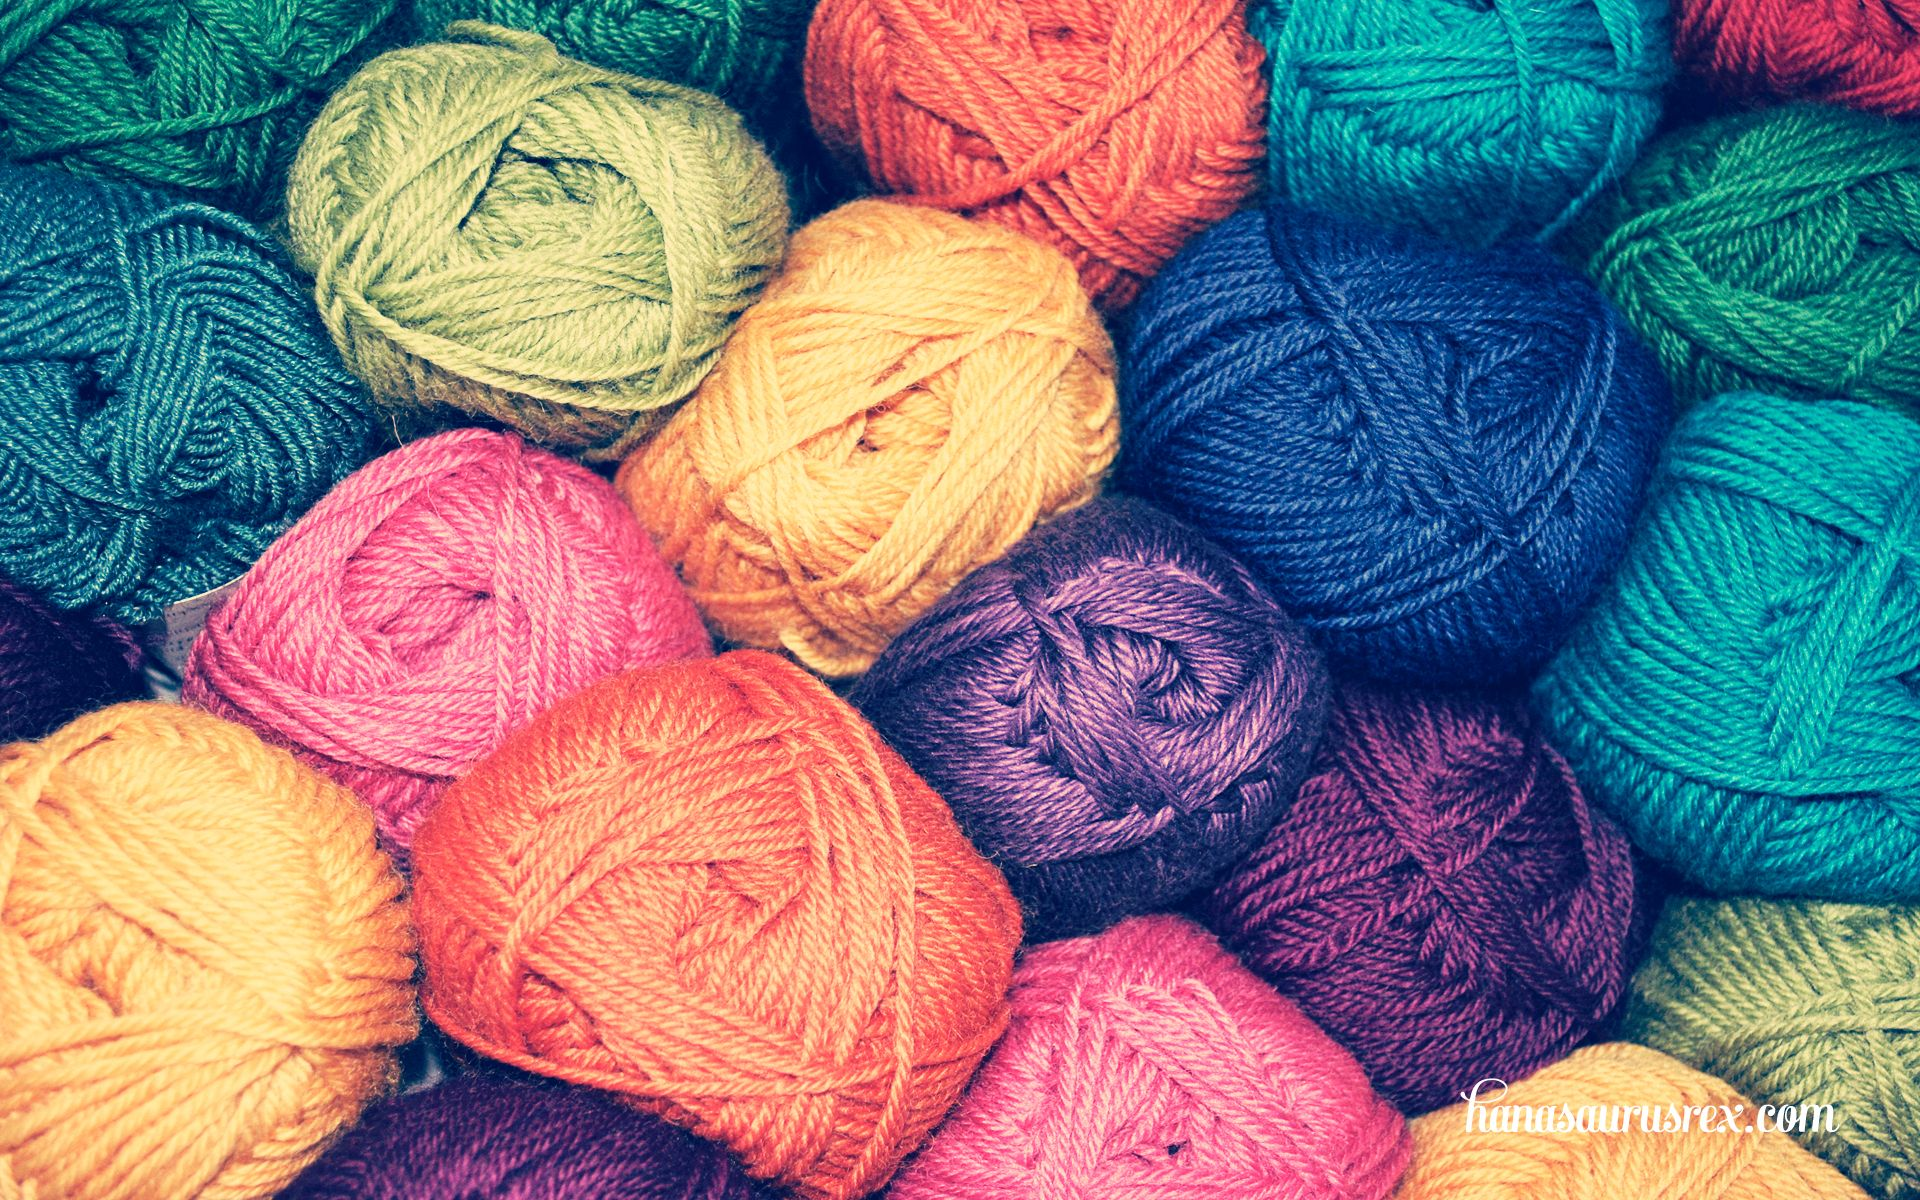 Free Crochet Yarn : Crochet Fridays - Crocheters in Central CT (Plainville, CT) Meetup